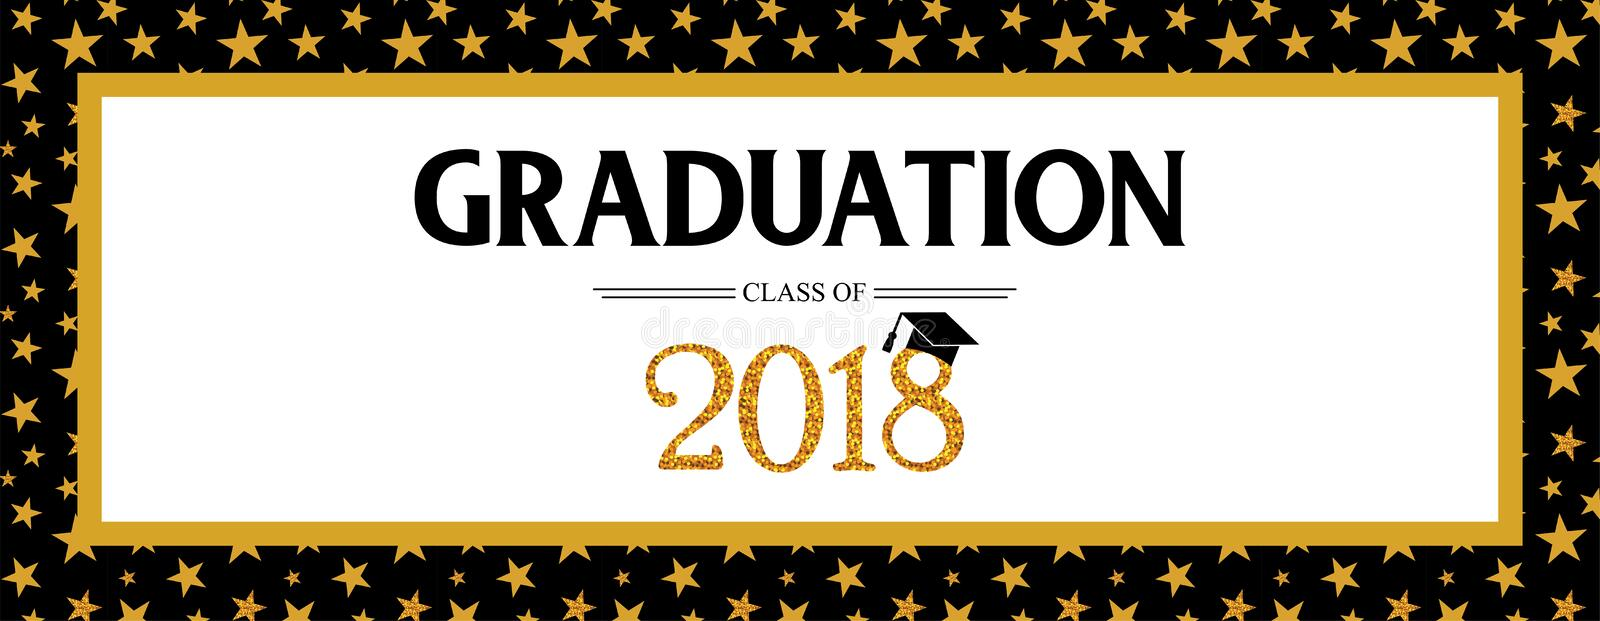 graduation class of 2018 greeting banner template vector party invitation banner grad poster. Black Bedroom Furniture Sets. Home Design Ideas